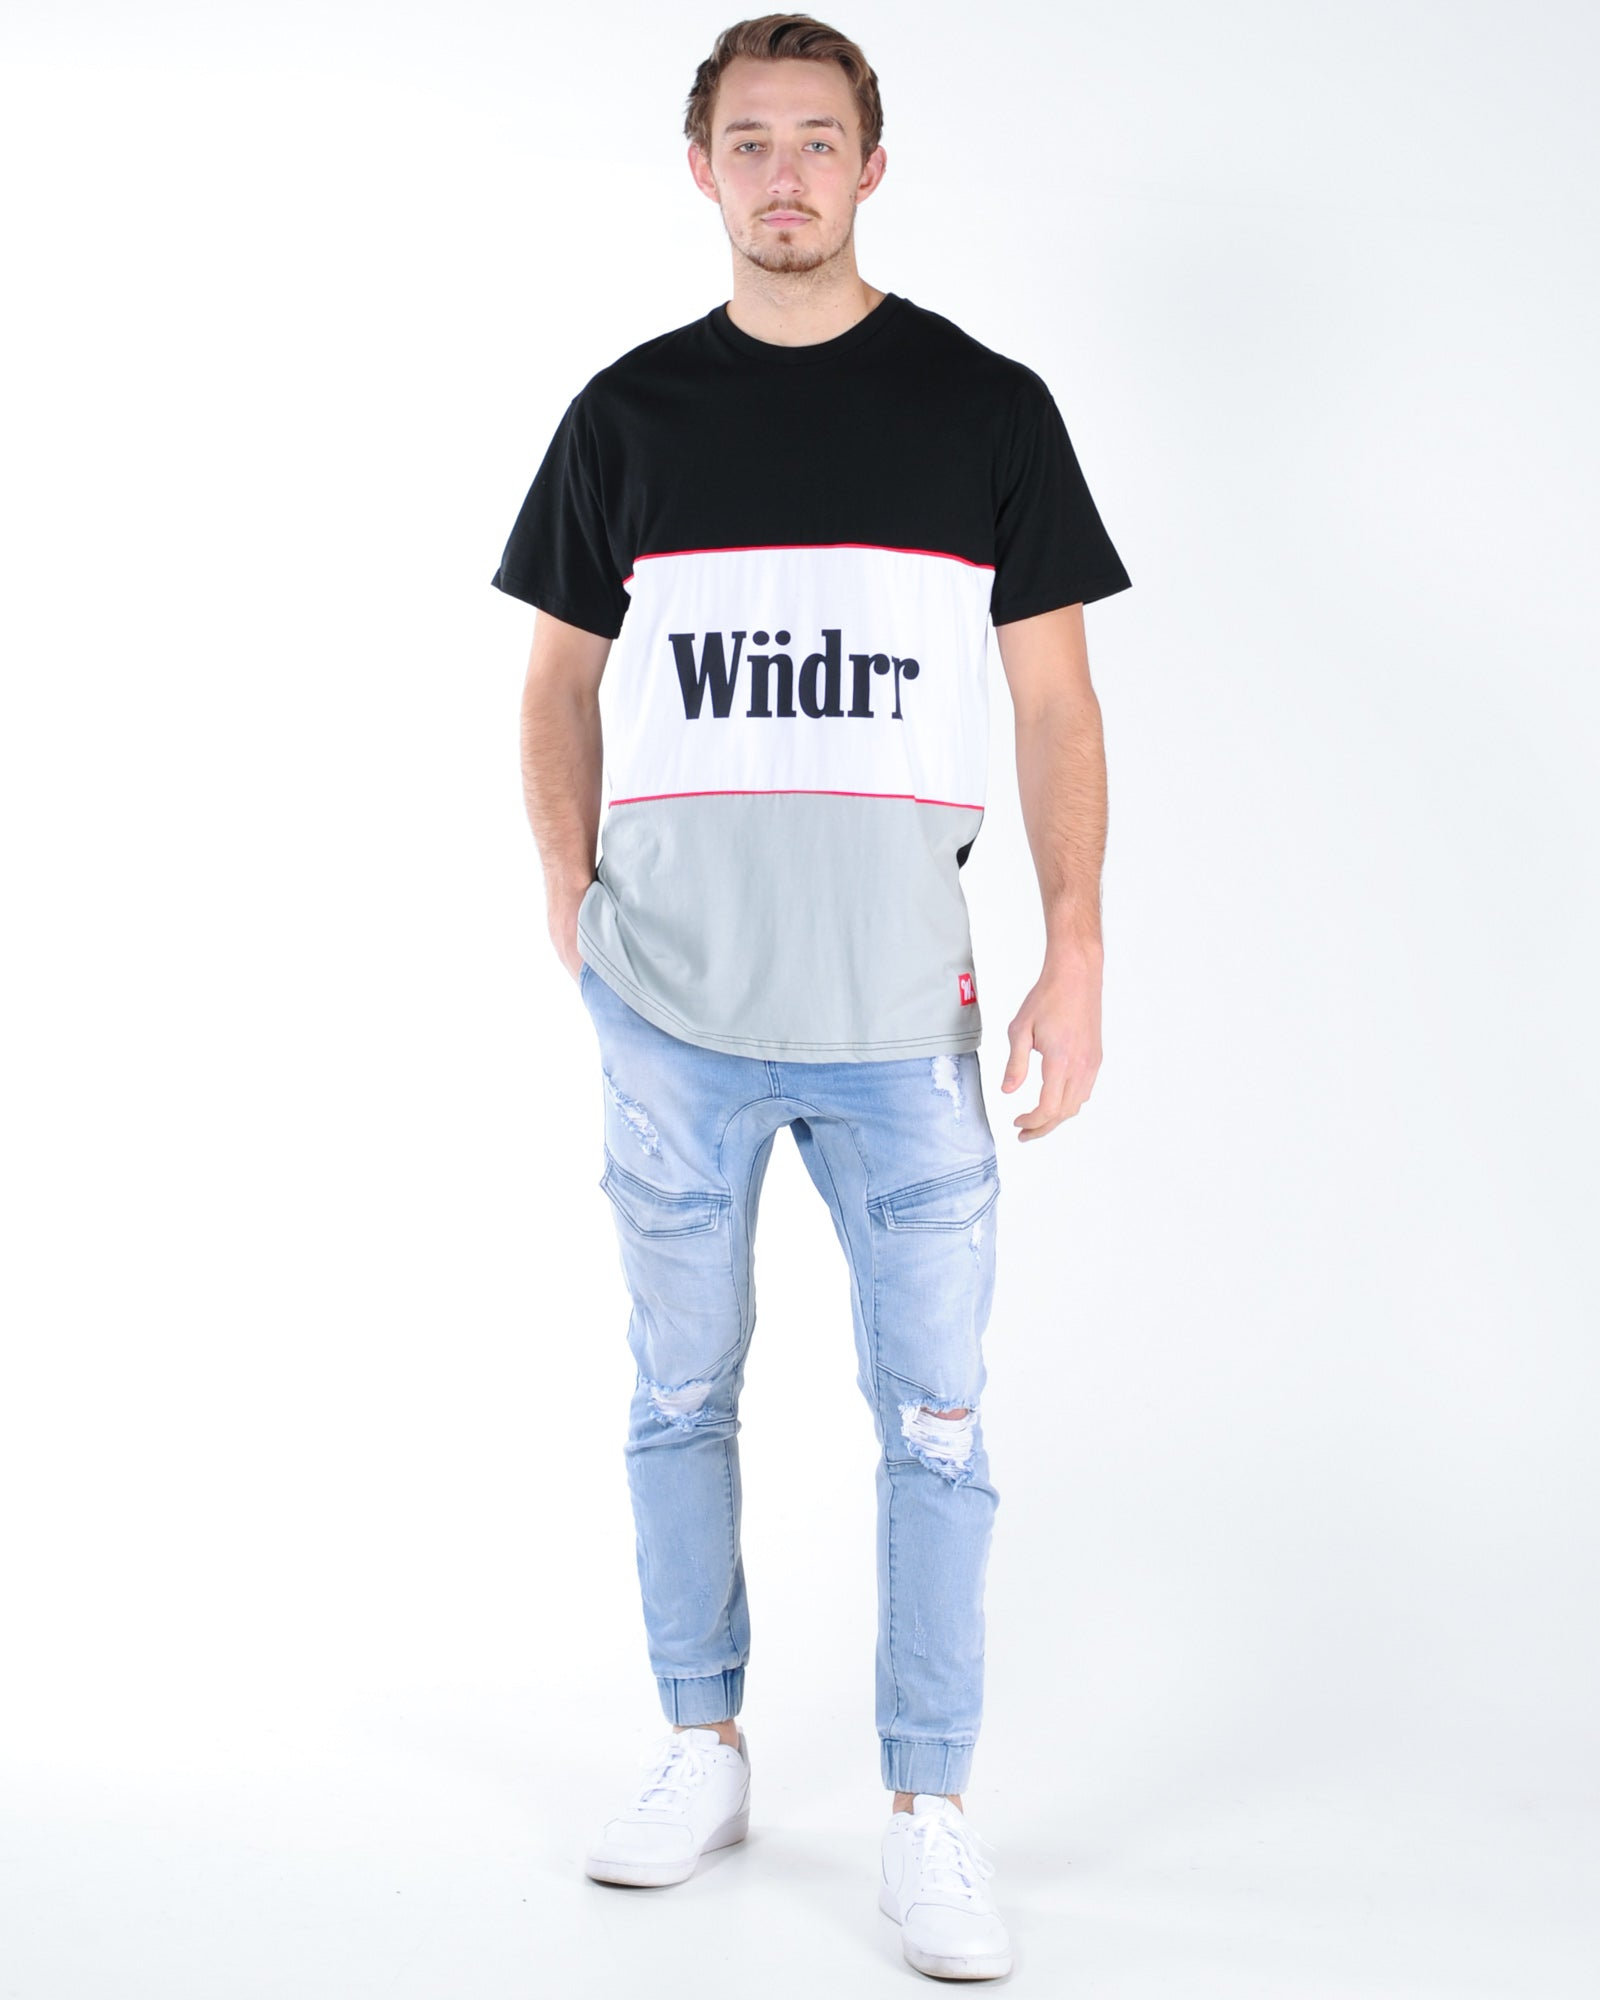 Wndrr Founder 3 Panel Custom Fit Tee - Multi